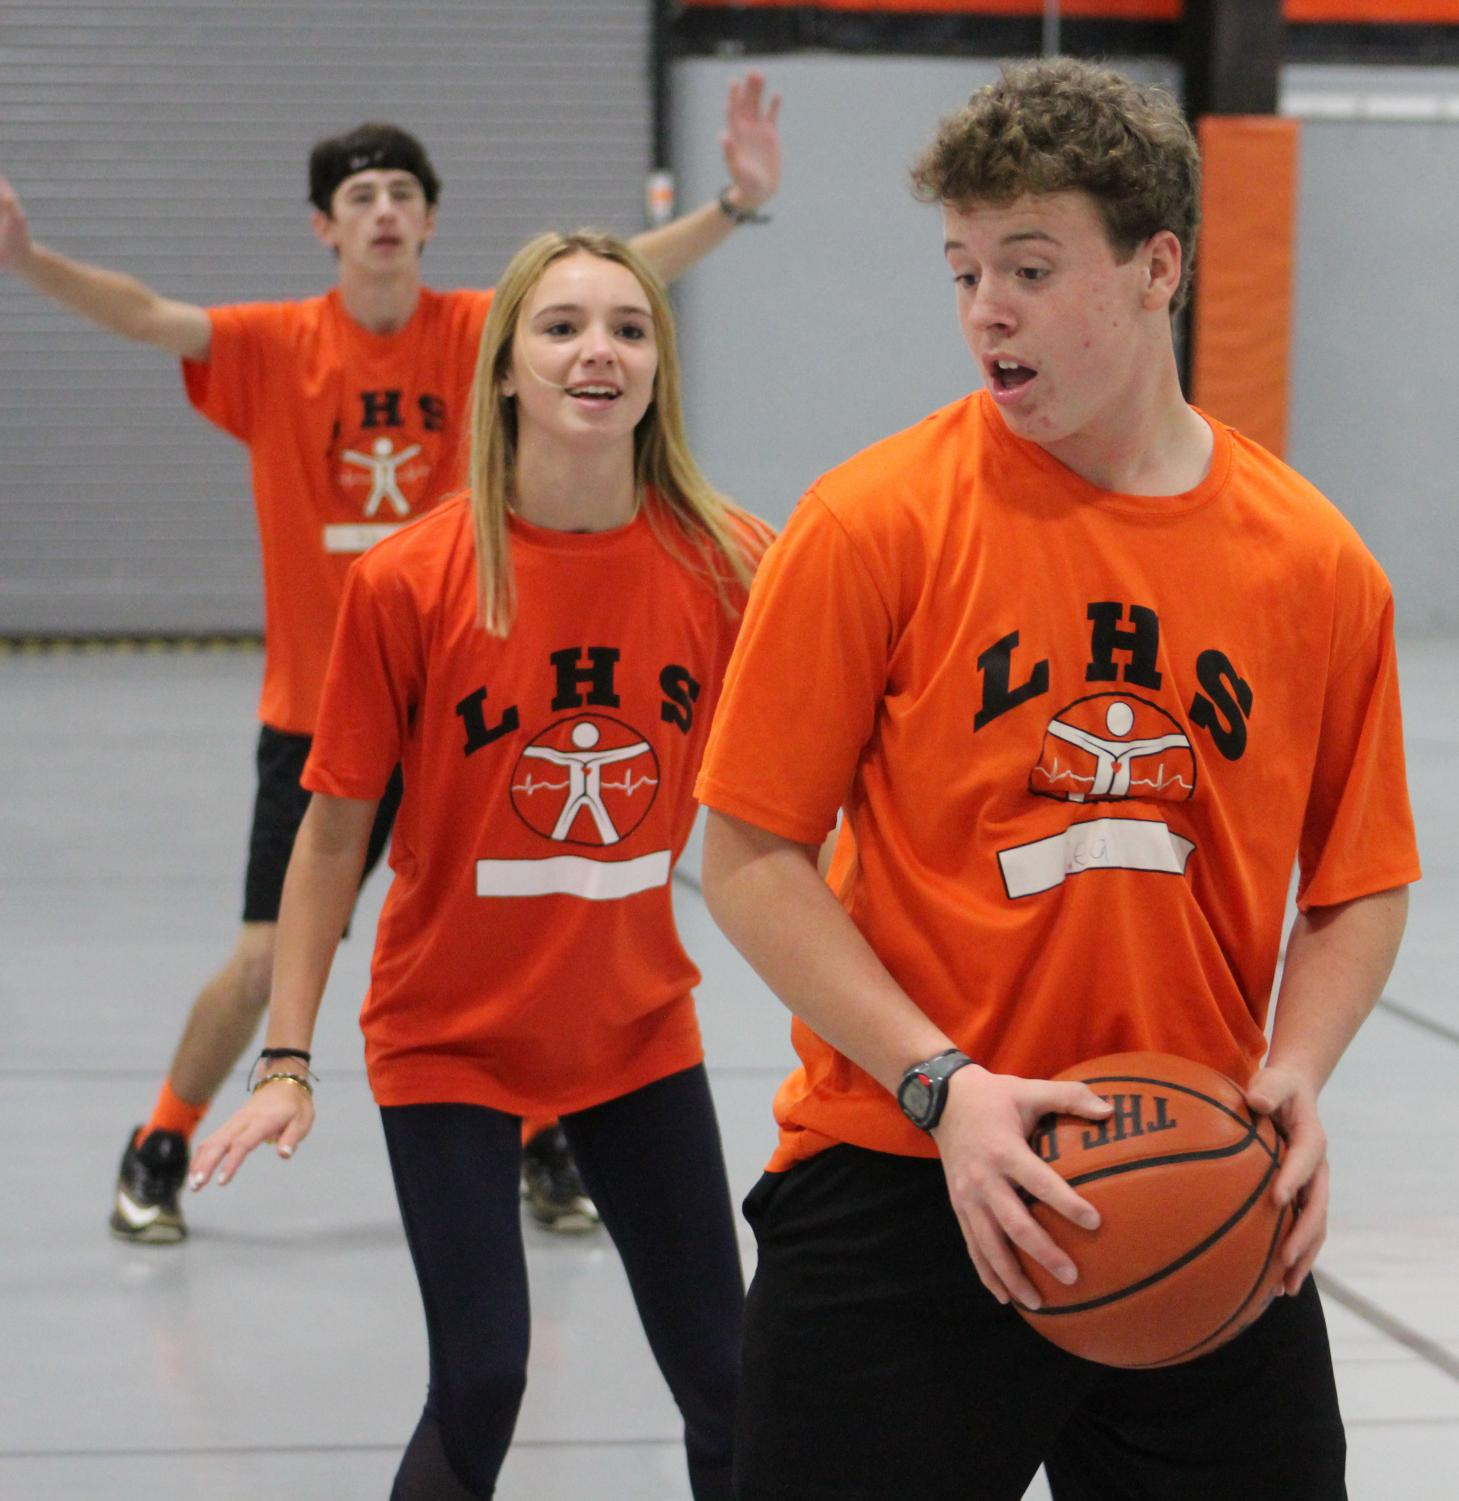 Freshmen Joey Neal, Claire Arnold and Dillion McDonald are just some of the freshmen participating in the basketball gym unit in Ms. Patti Mascia's third-period freshmen P.E. class